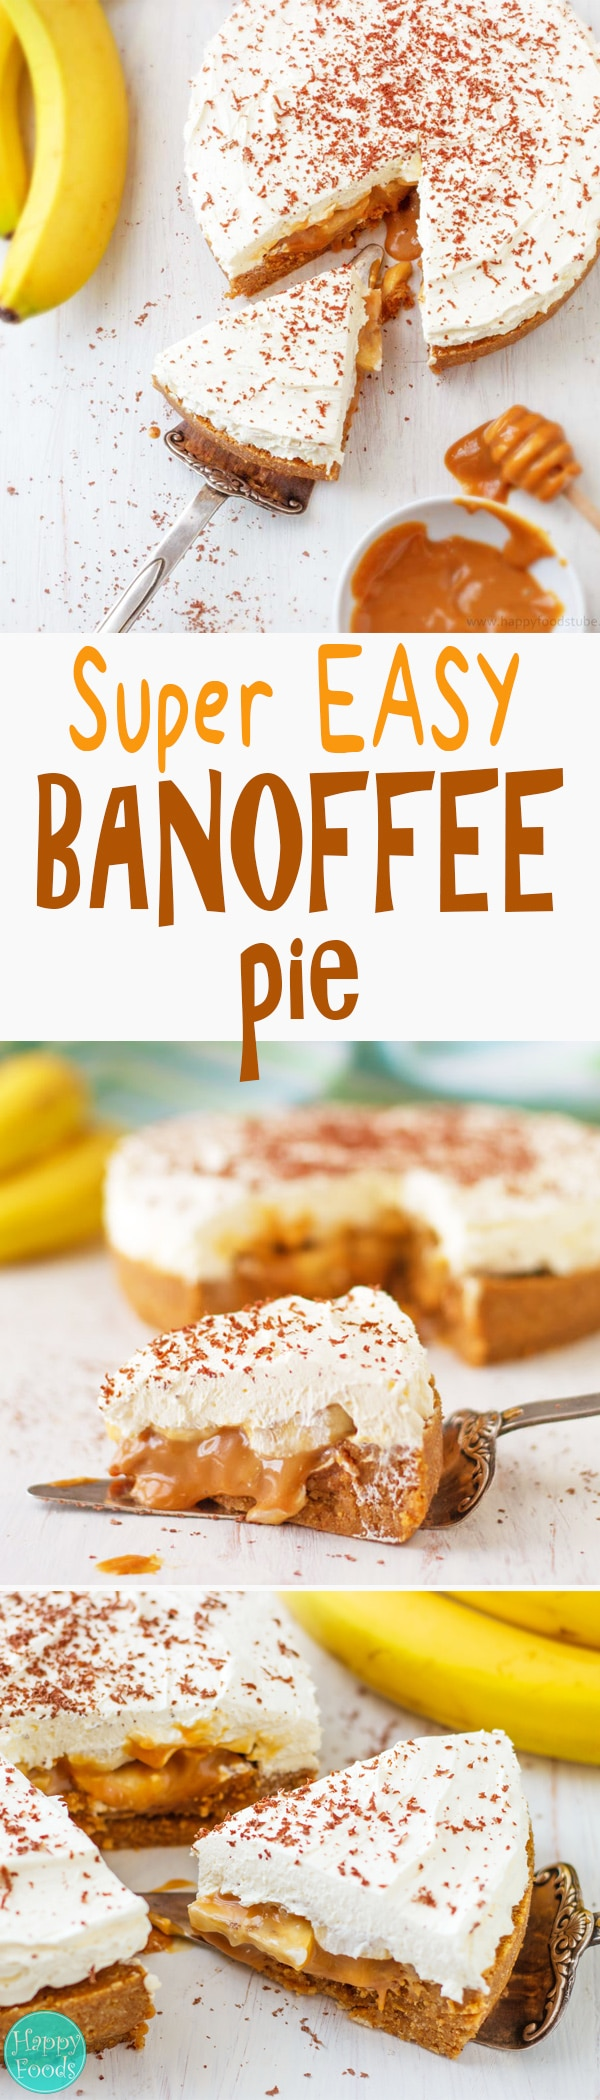 No Bake Banana Banoffee Pie - Super easy and delicious classic dessert recipe. Banoffee pie is just irresistible made from simple ingredients bananas, cream and toffee | happyfoodstube.com